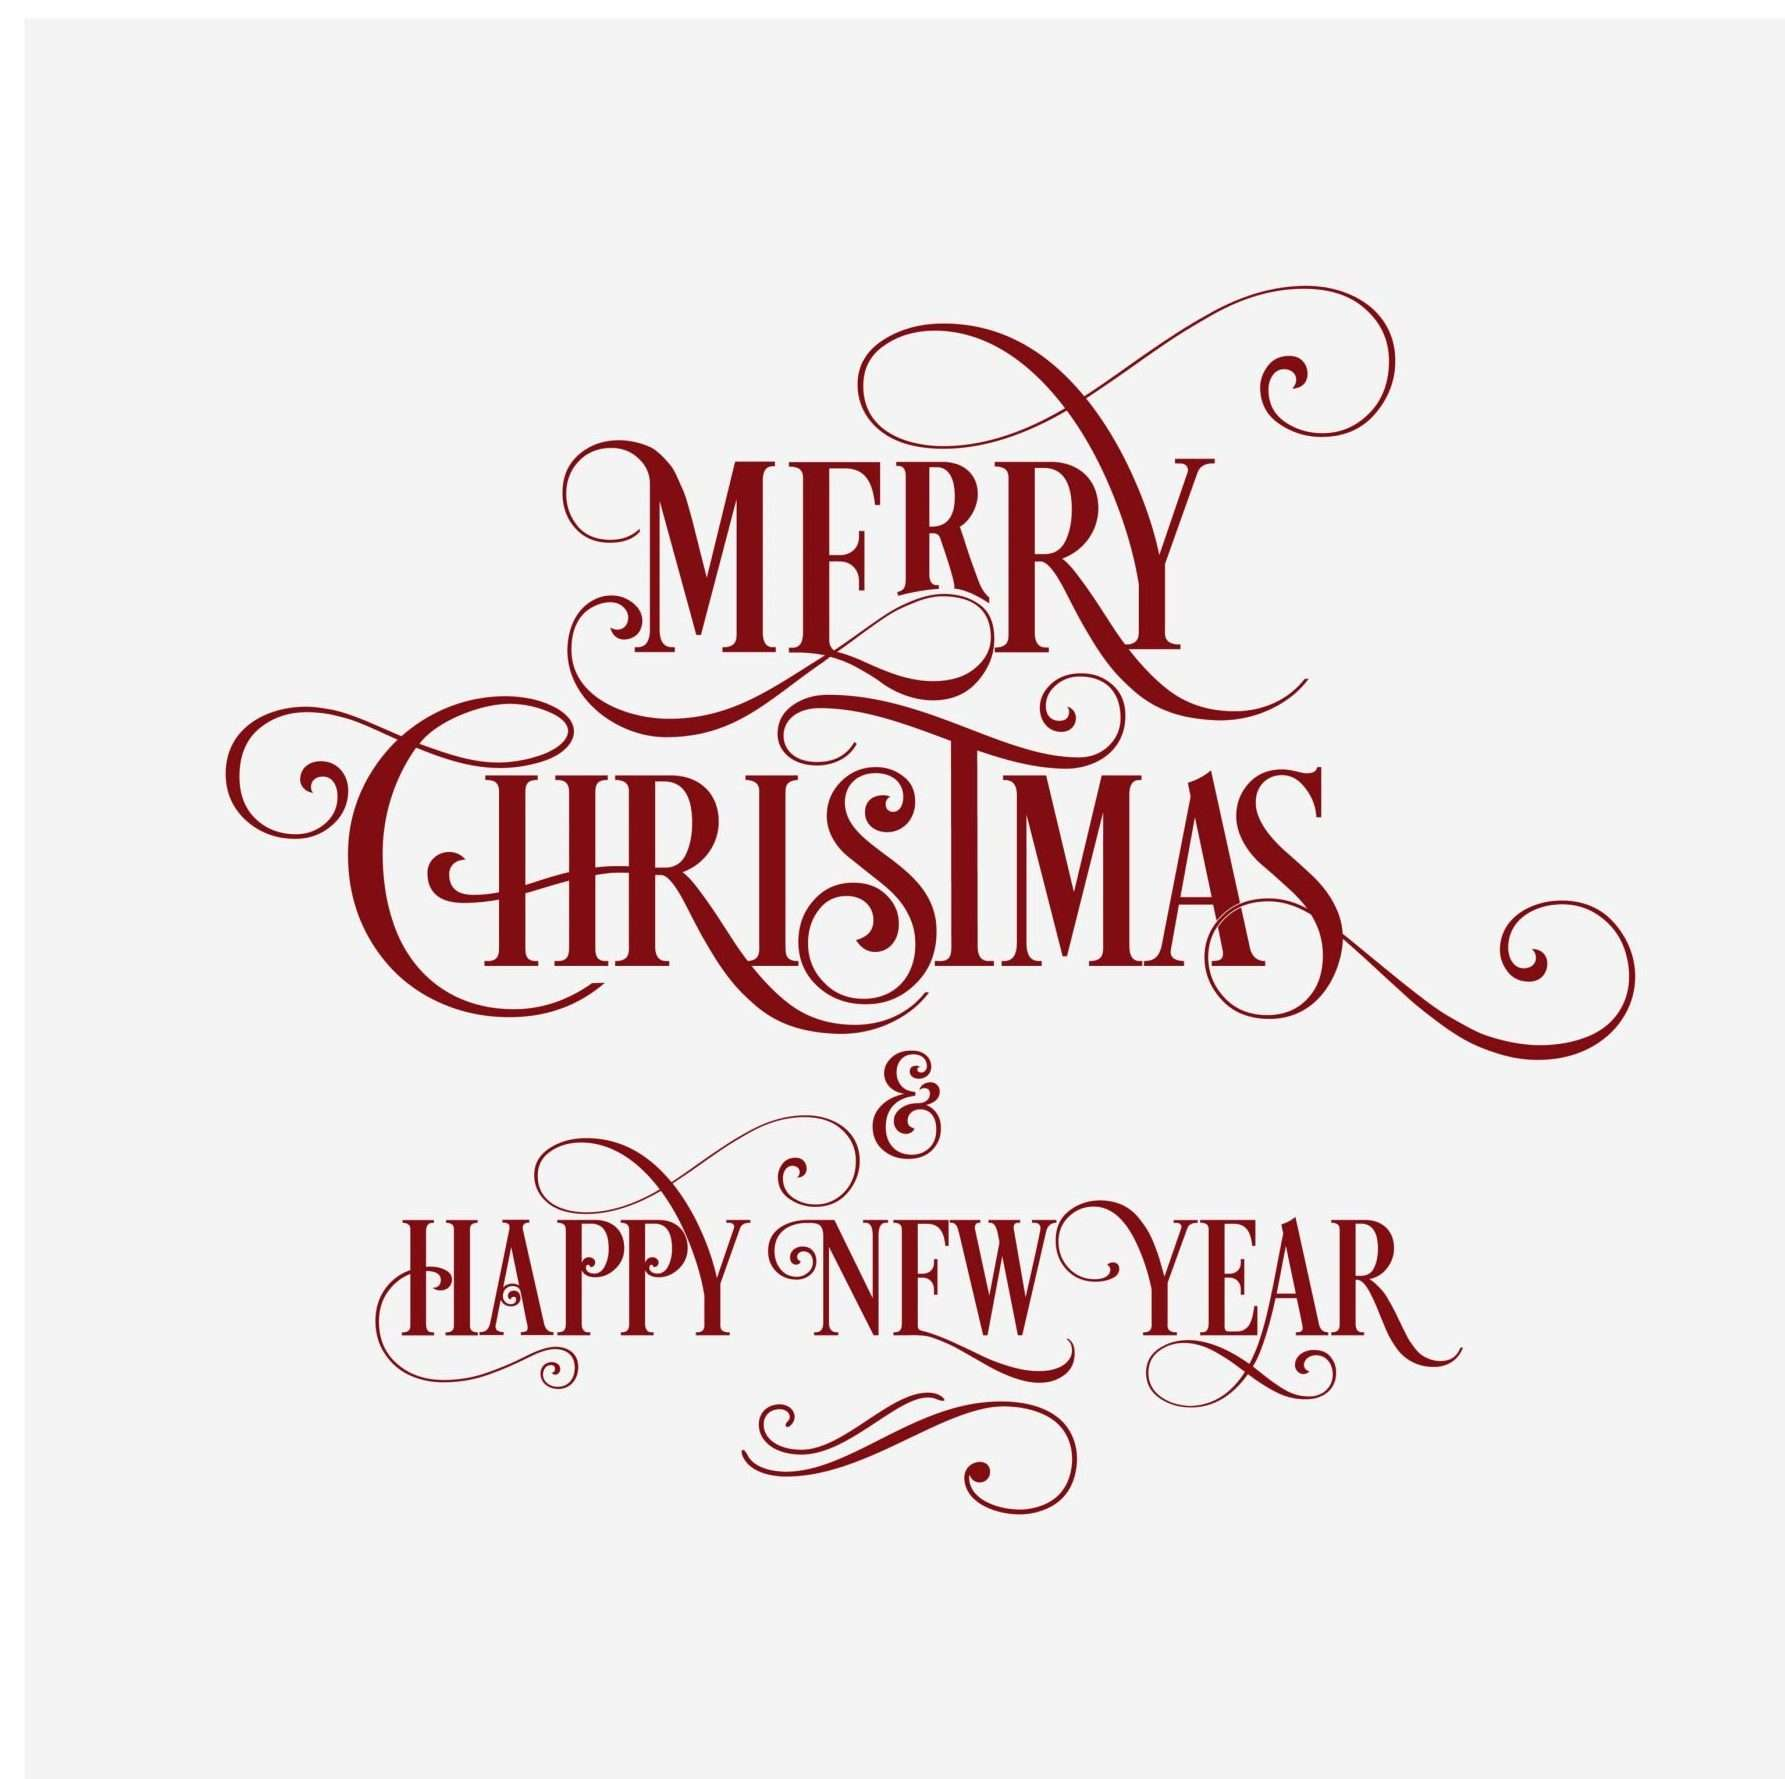 Merry Christmas from Cristo Rey Tampa